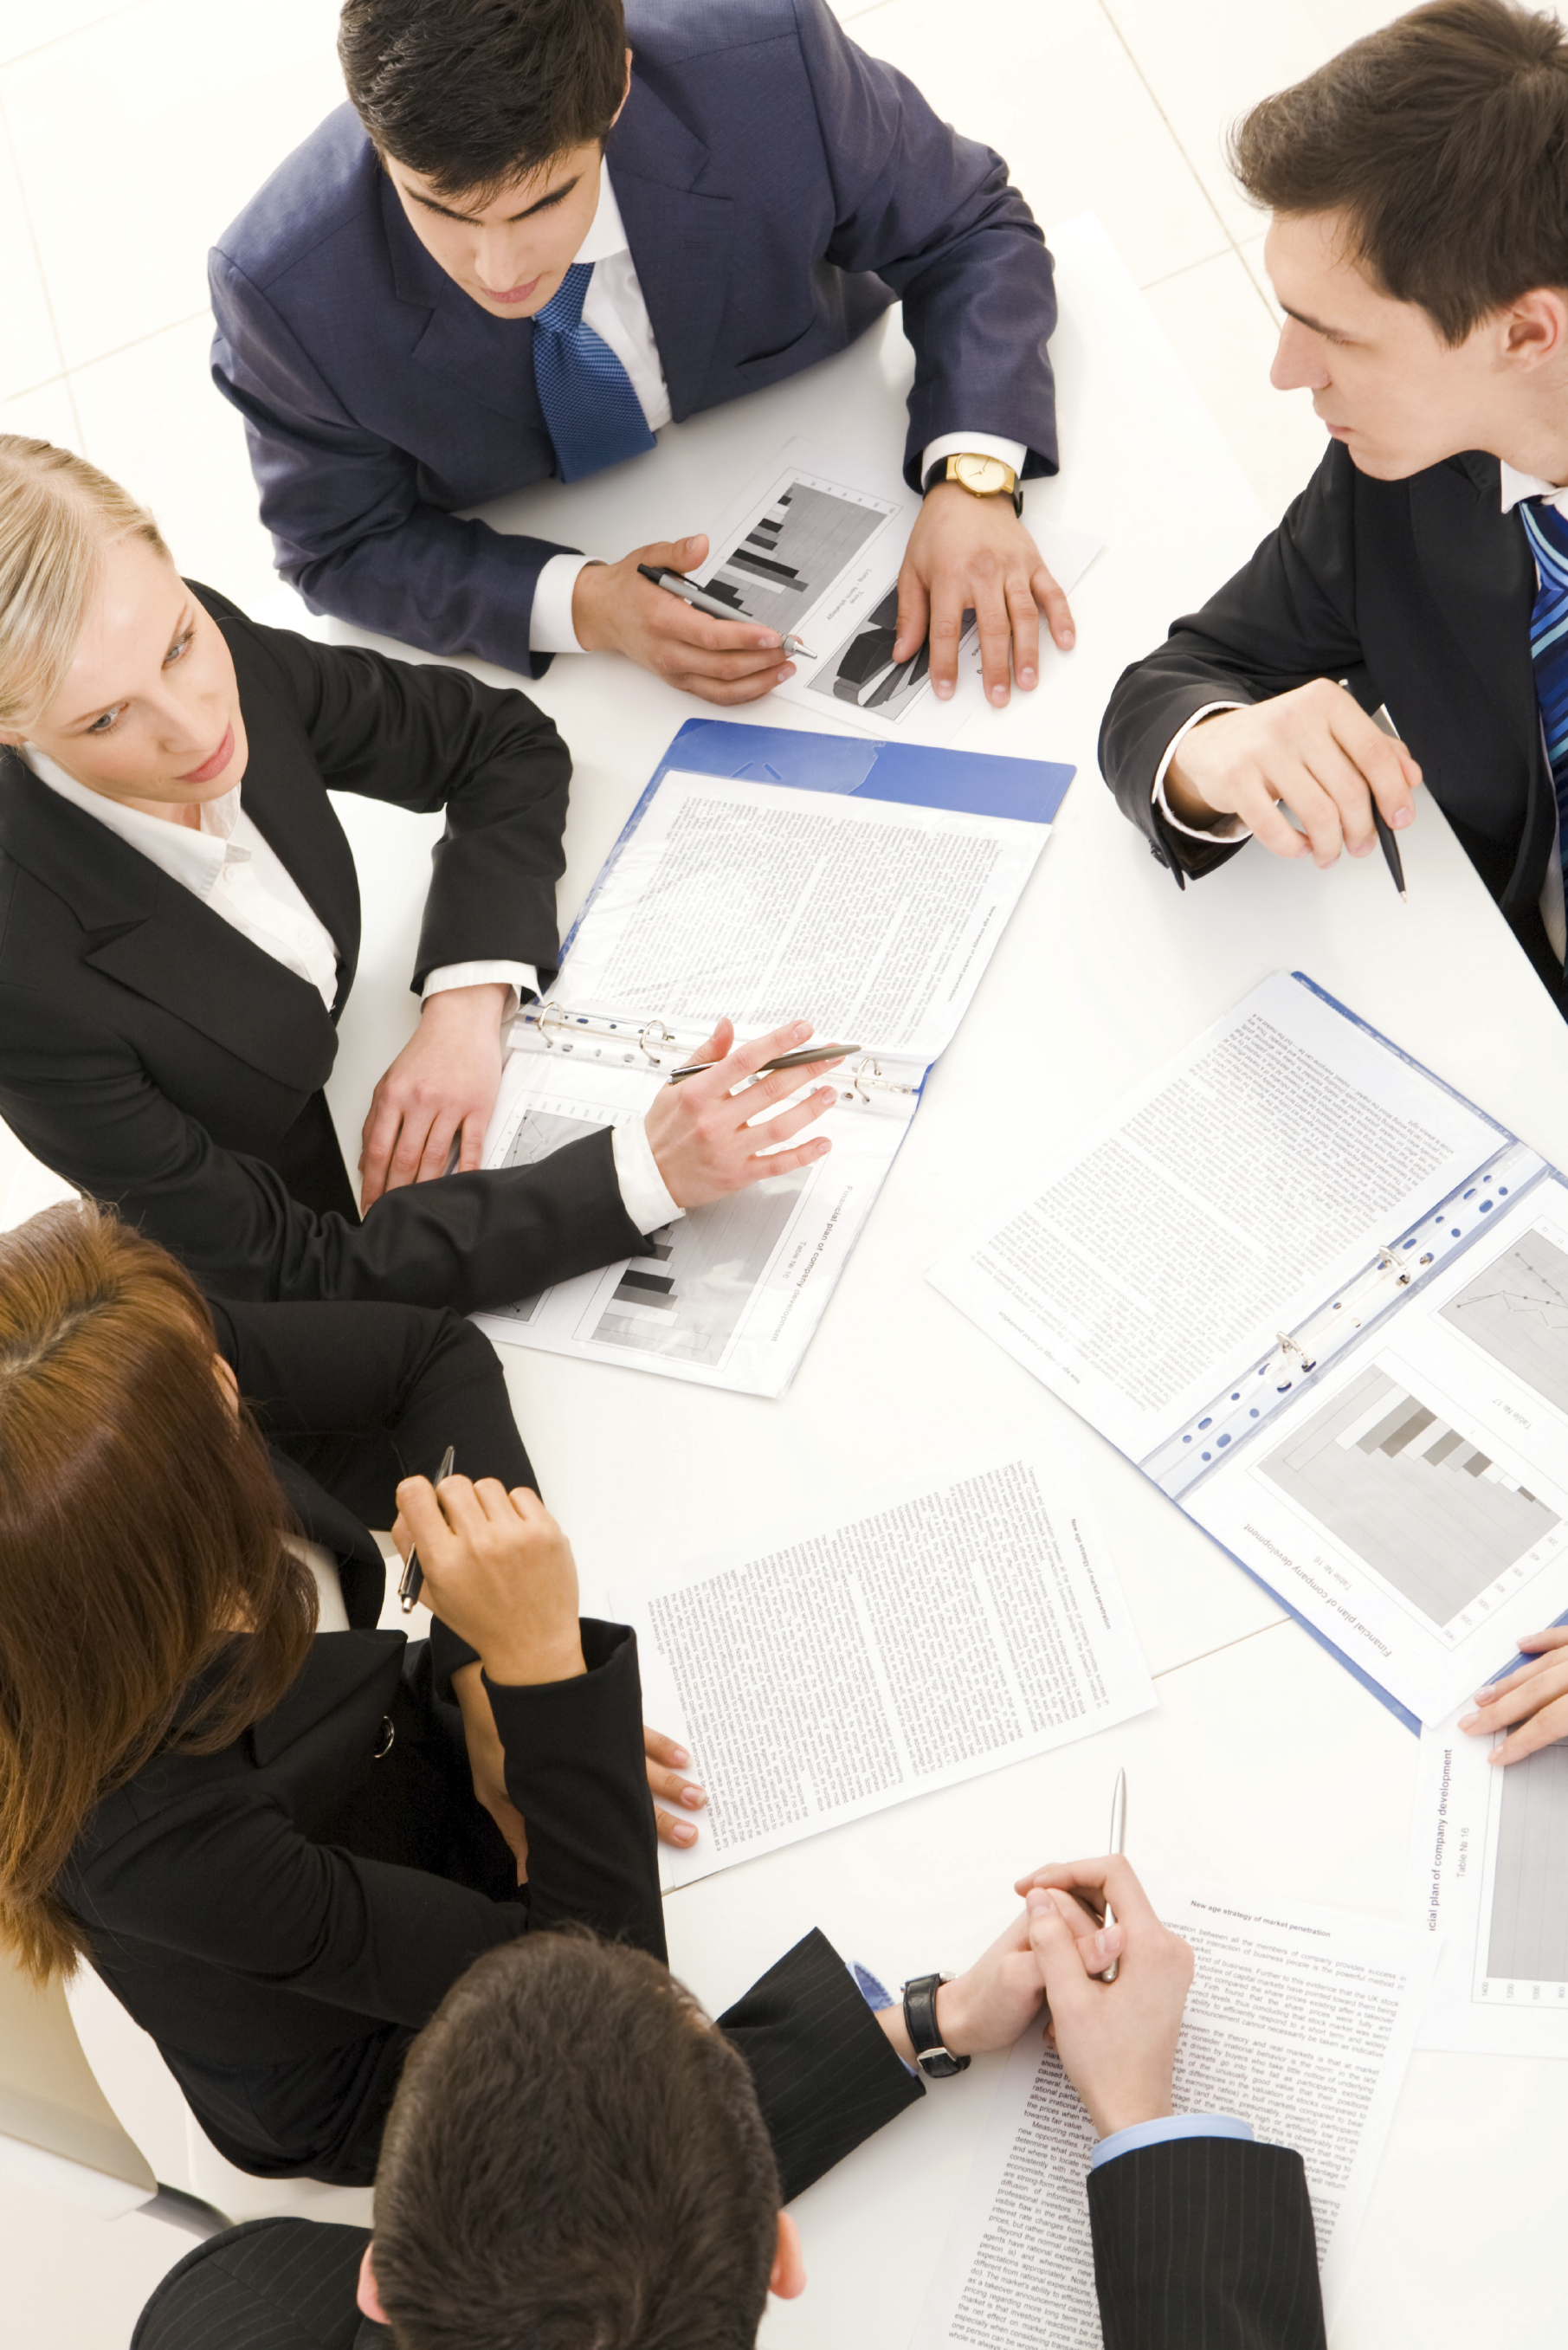 Are bad meetings limiting your staff productivity?